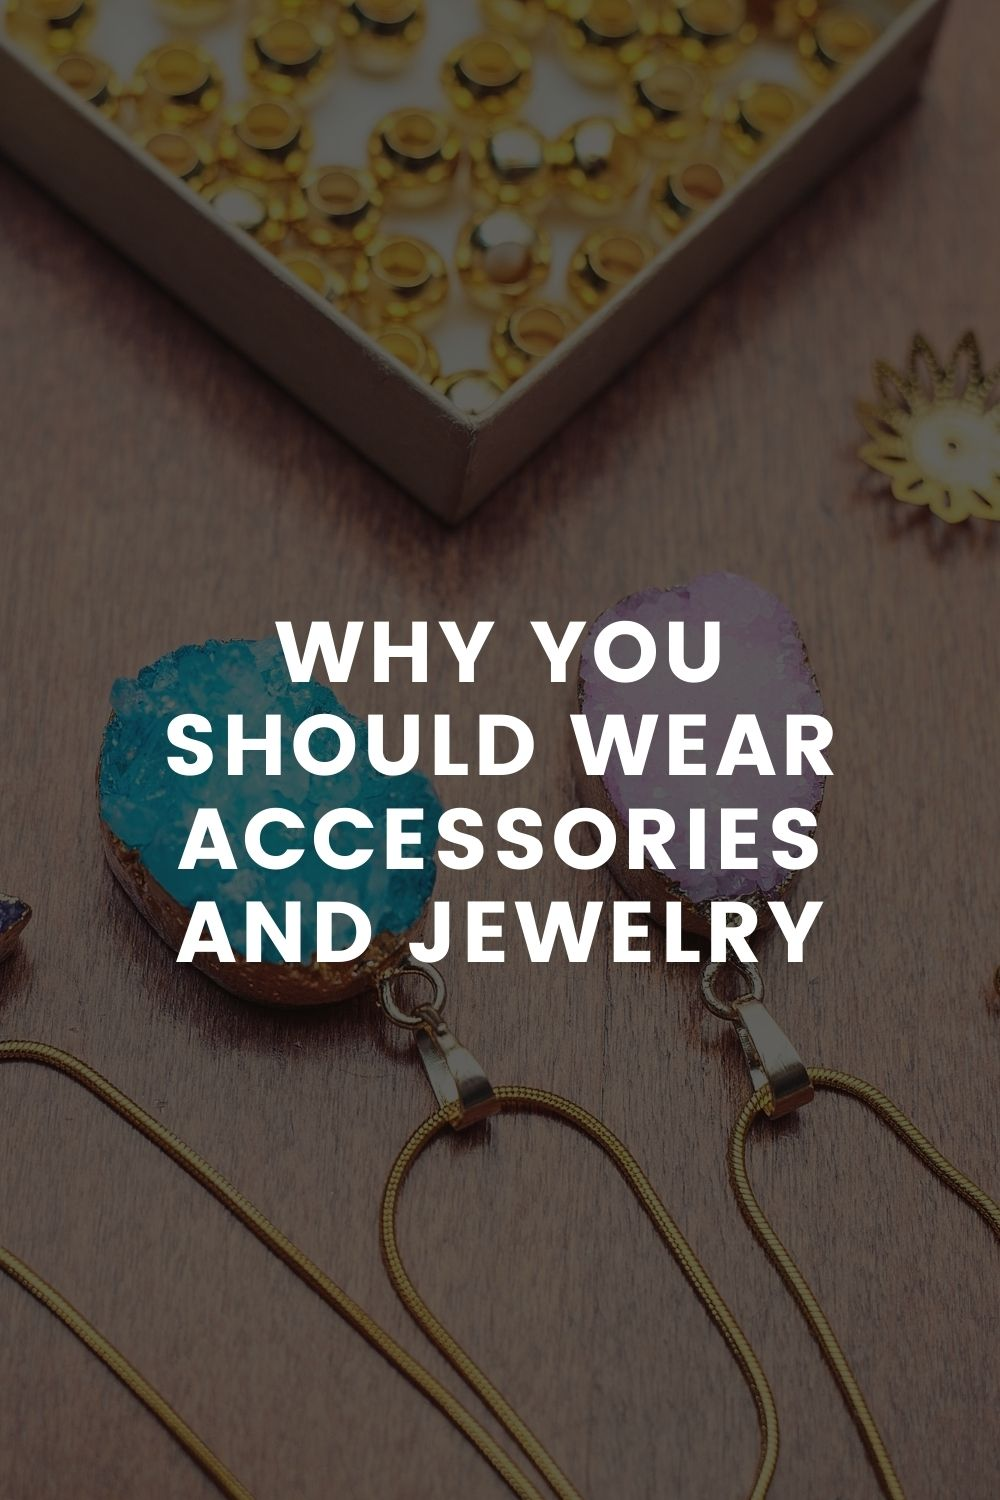 Why You Should Wear Accessories and Jewelry